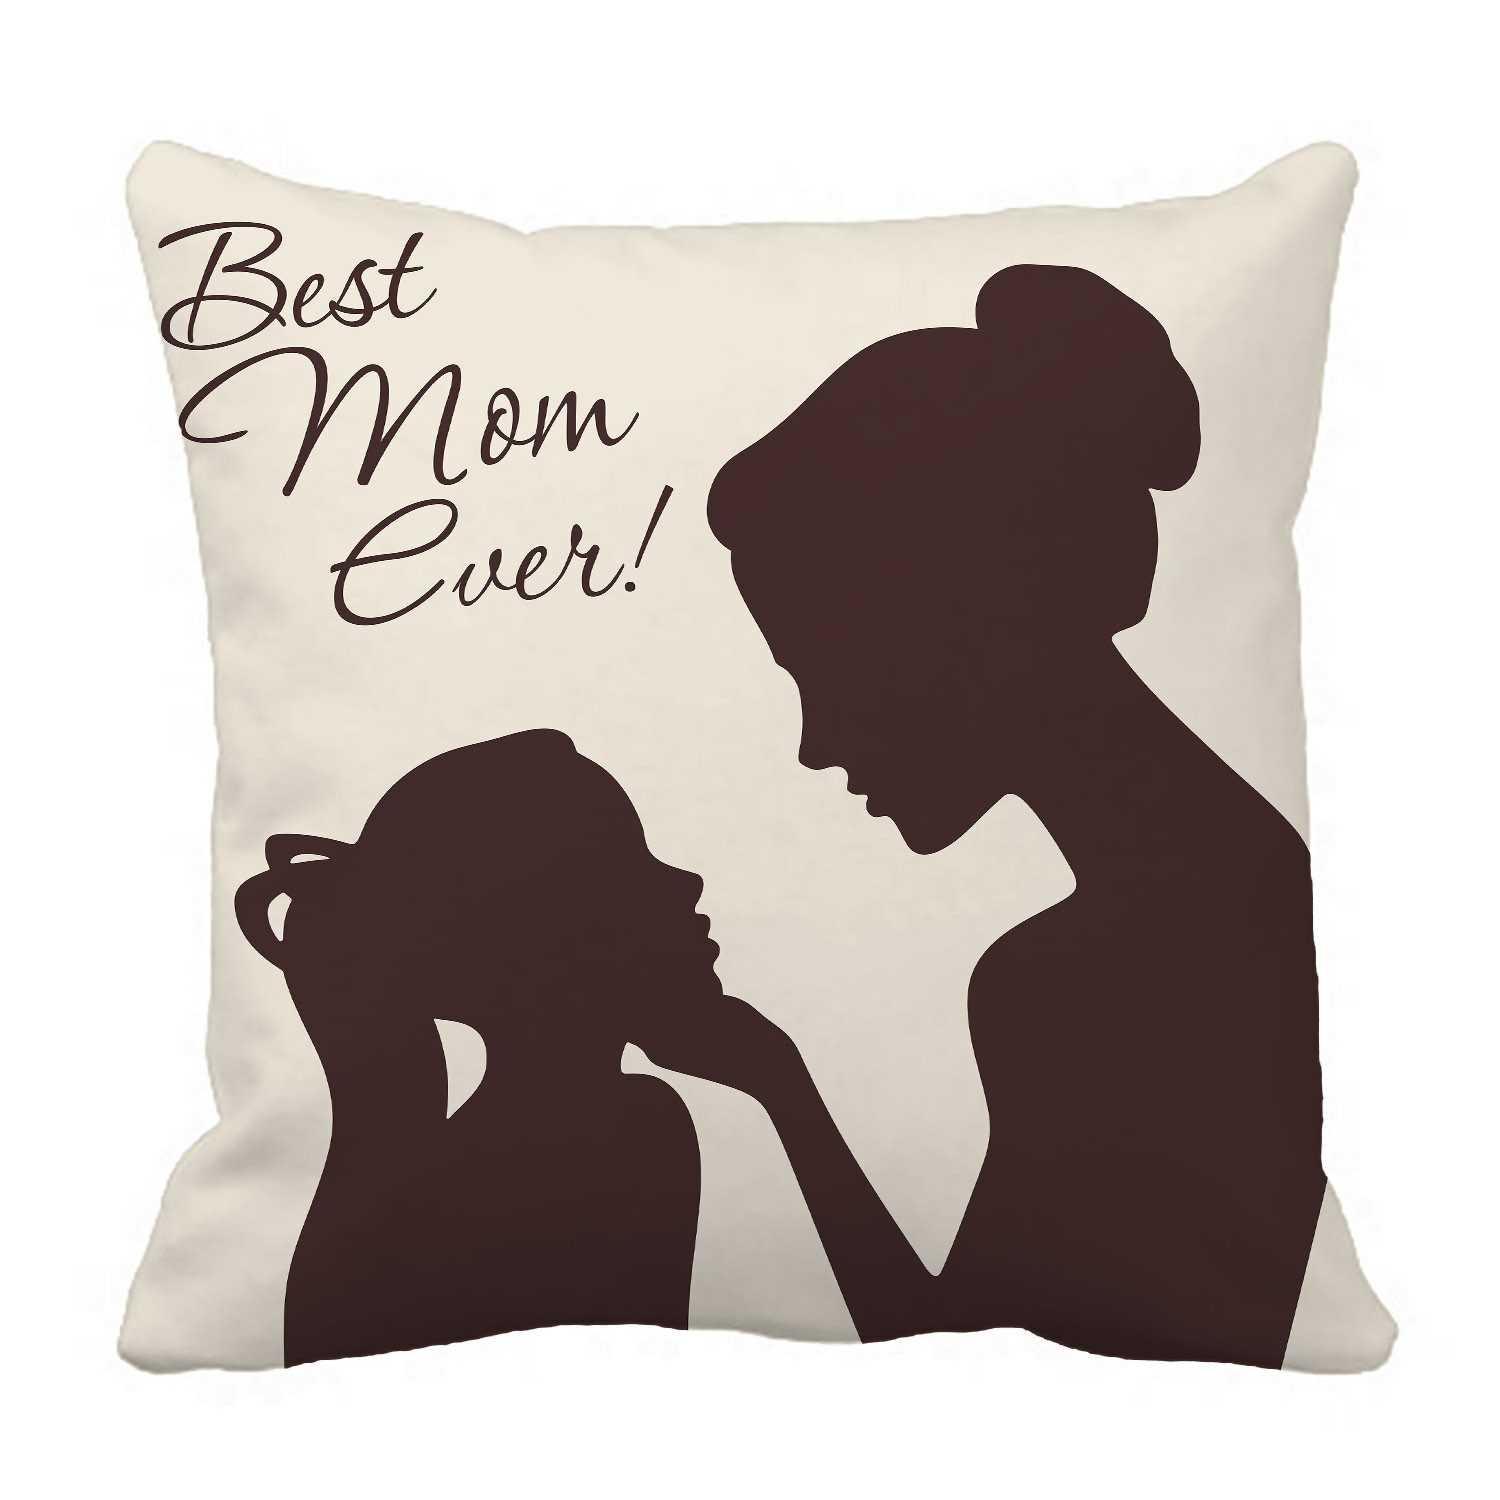 abphqto mother daughter silhouettes best mom ever pillow case pillow cover pillow protector two sides for couch bed 20x20 inch